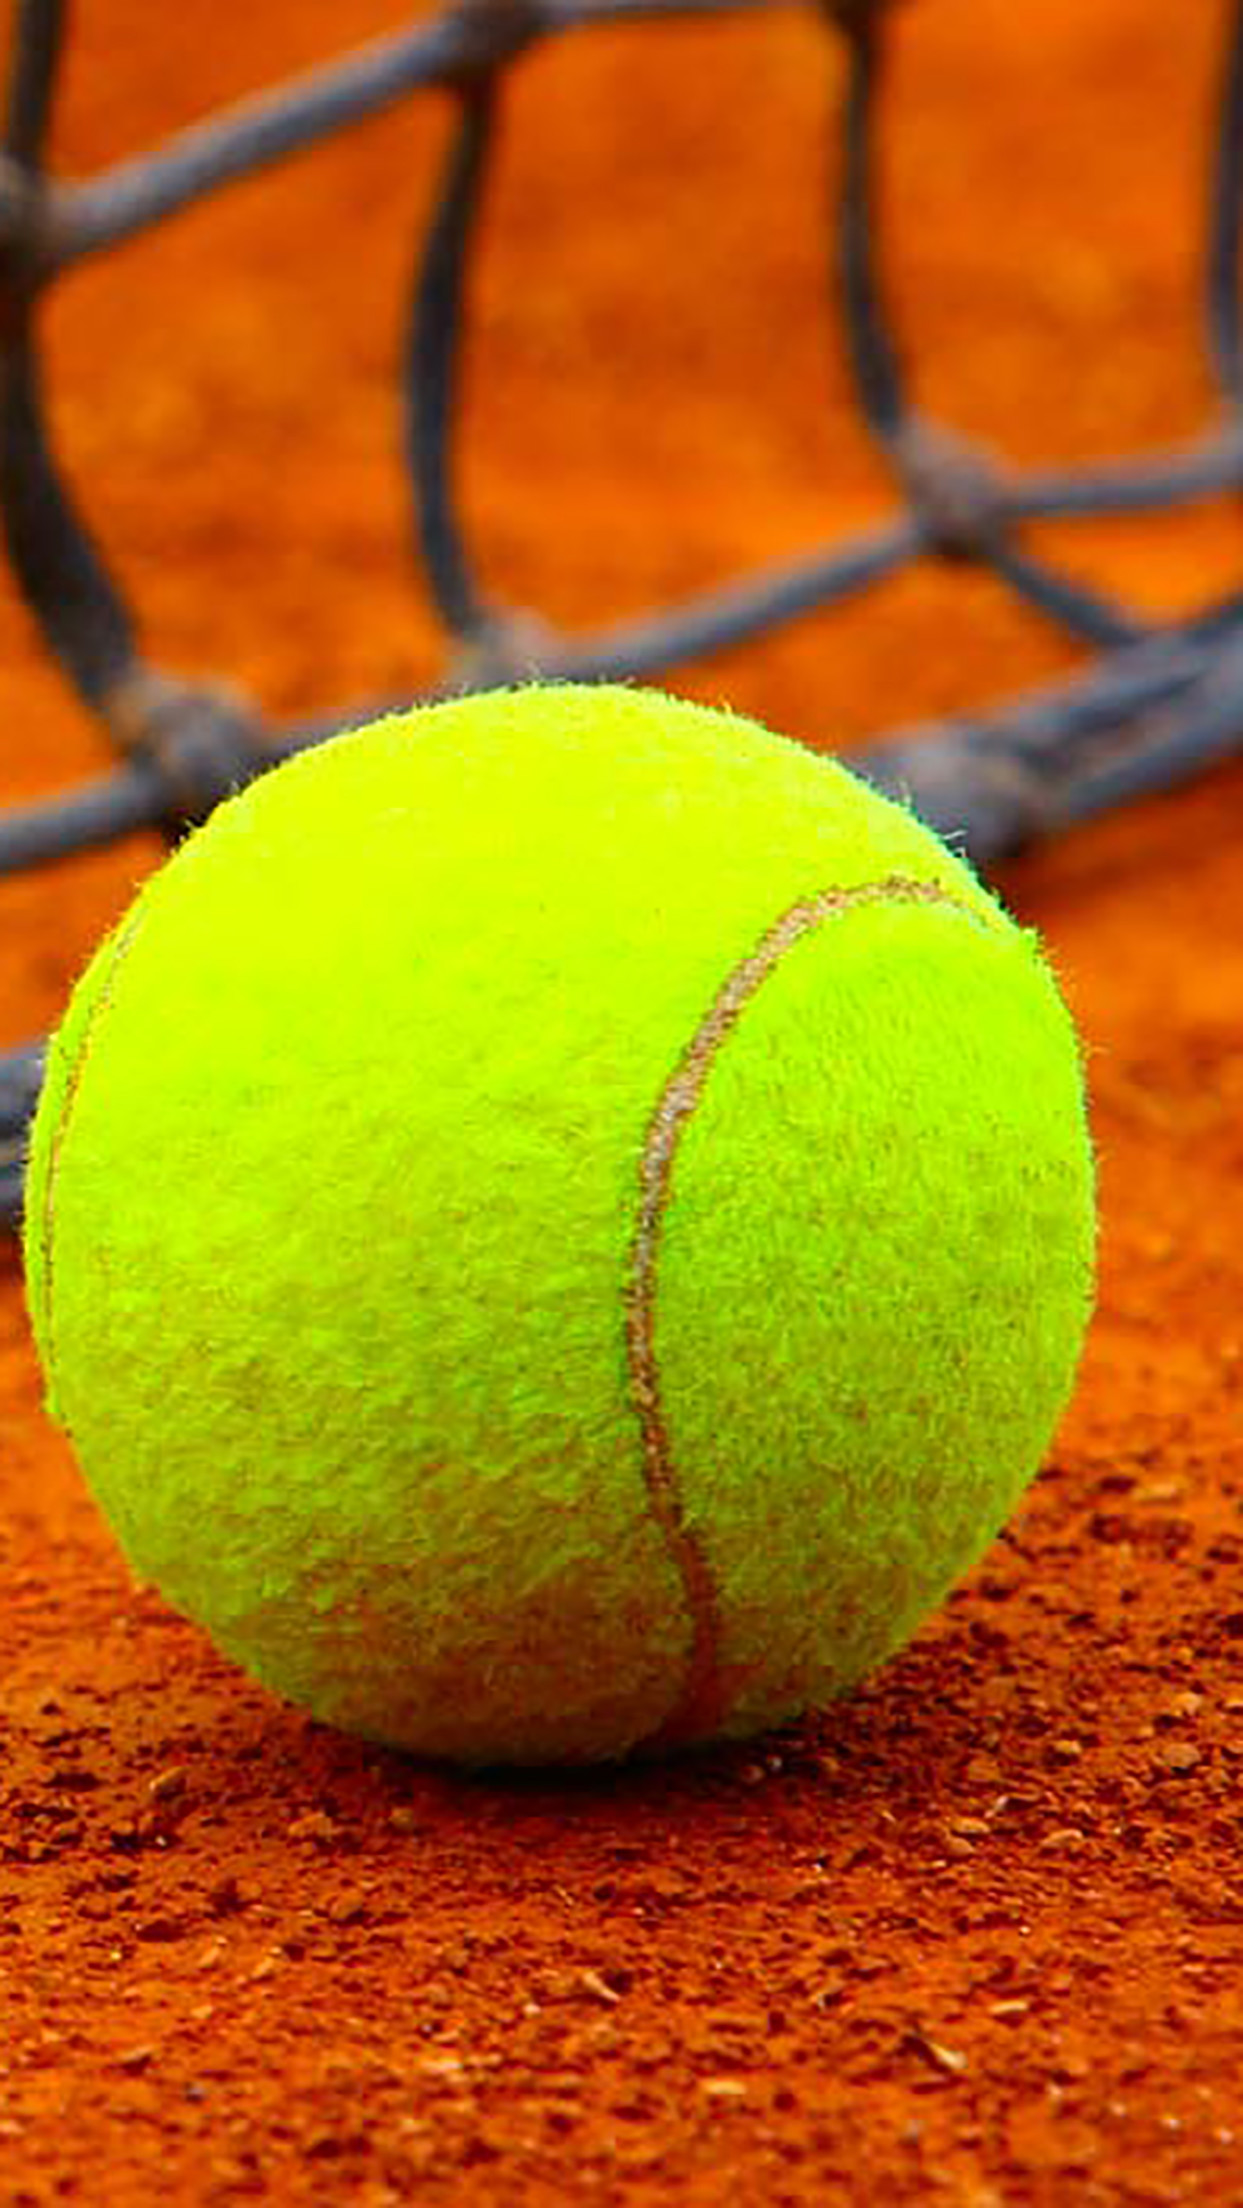 Tennis-Ball-On-The-Ground-3Wallpapers-iPhone-Parallax